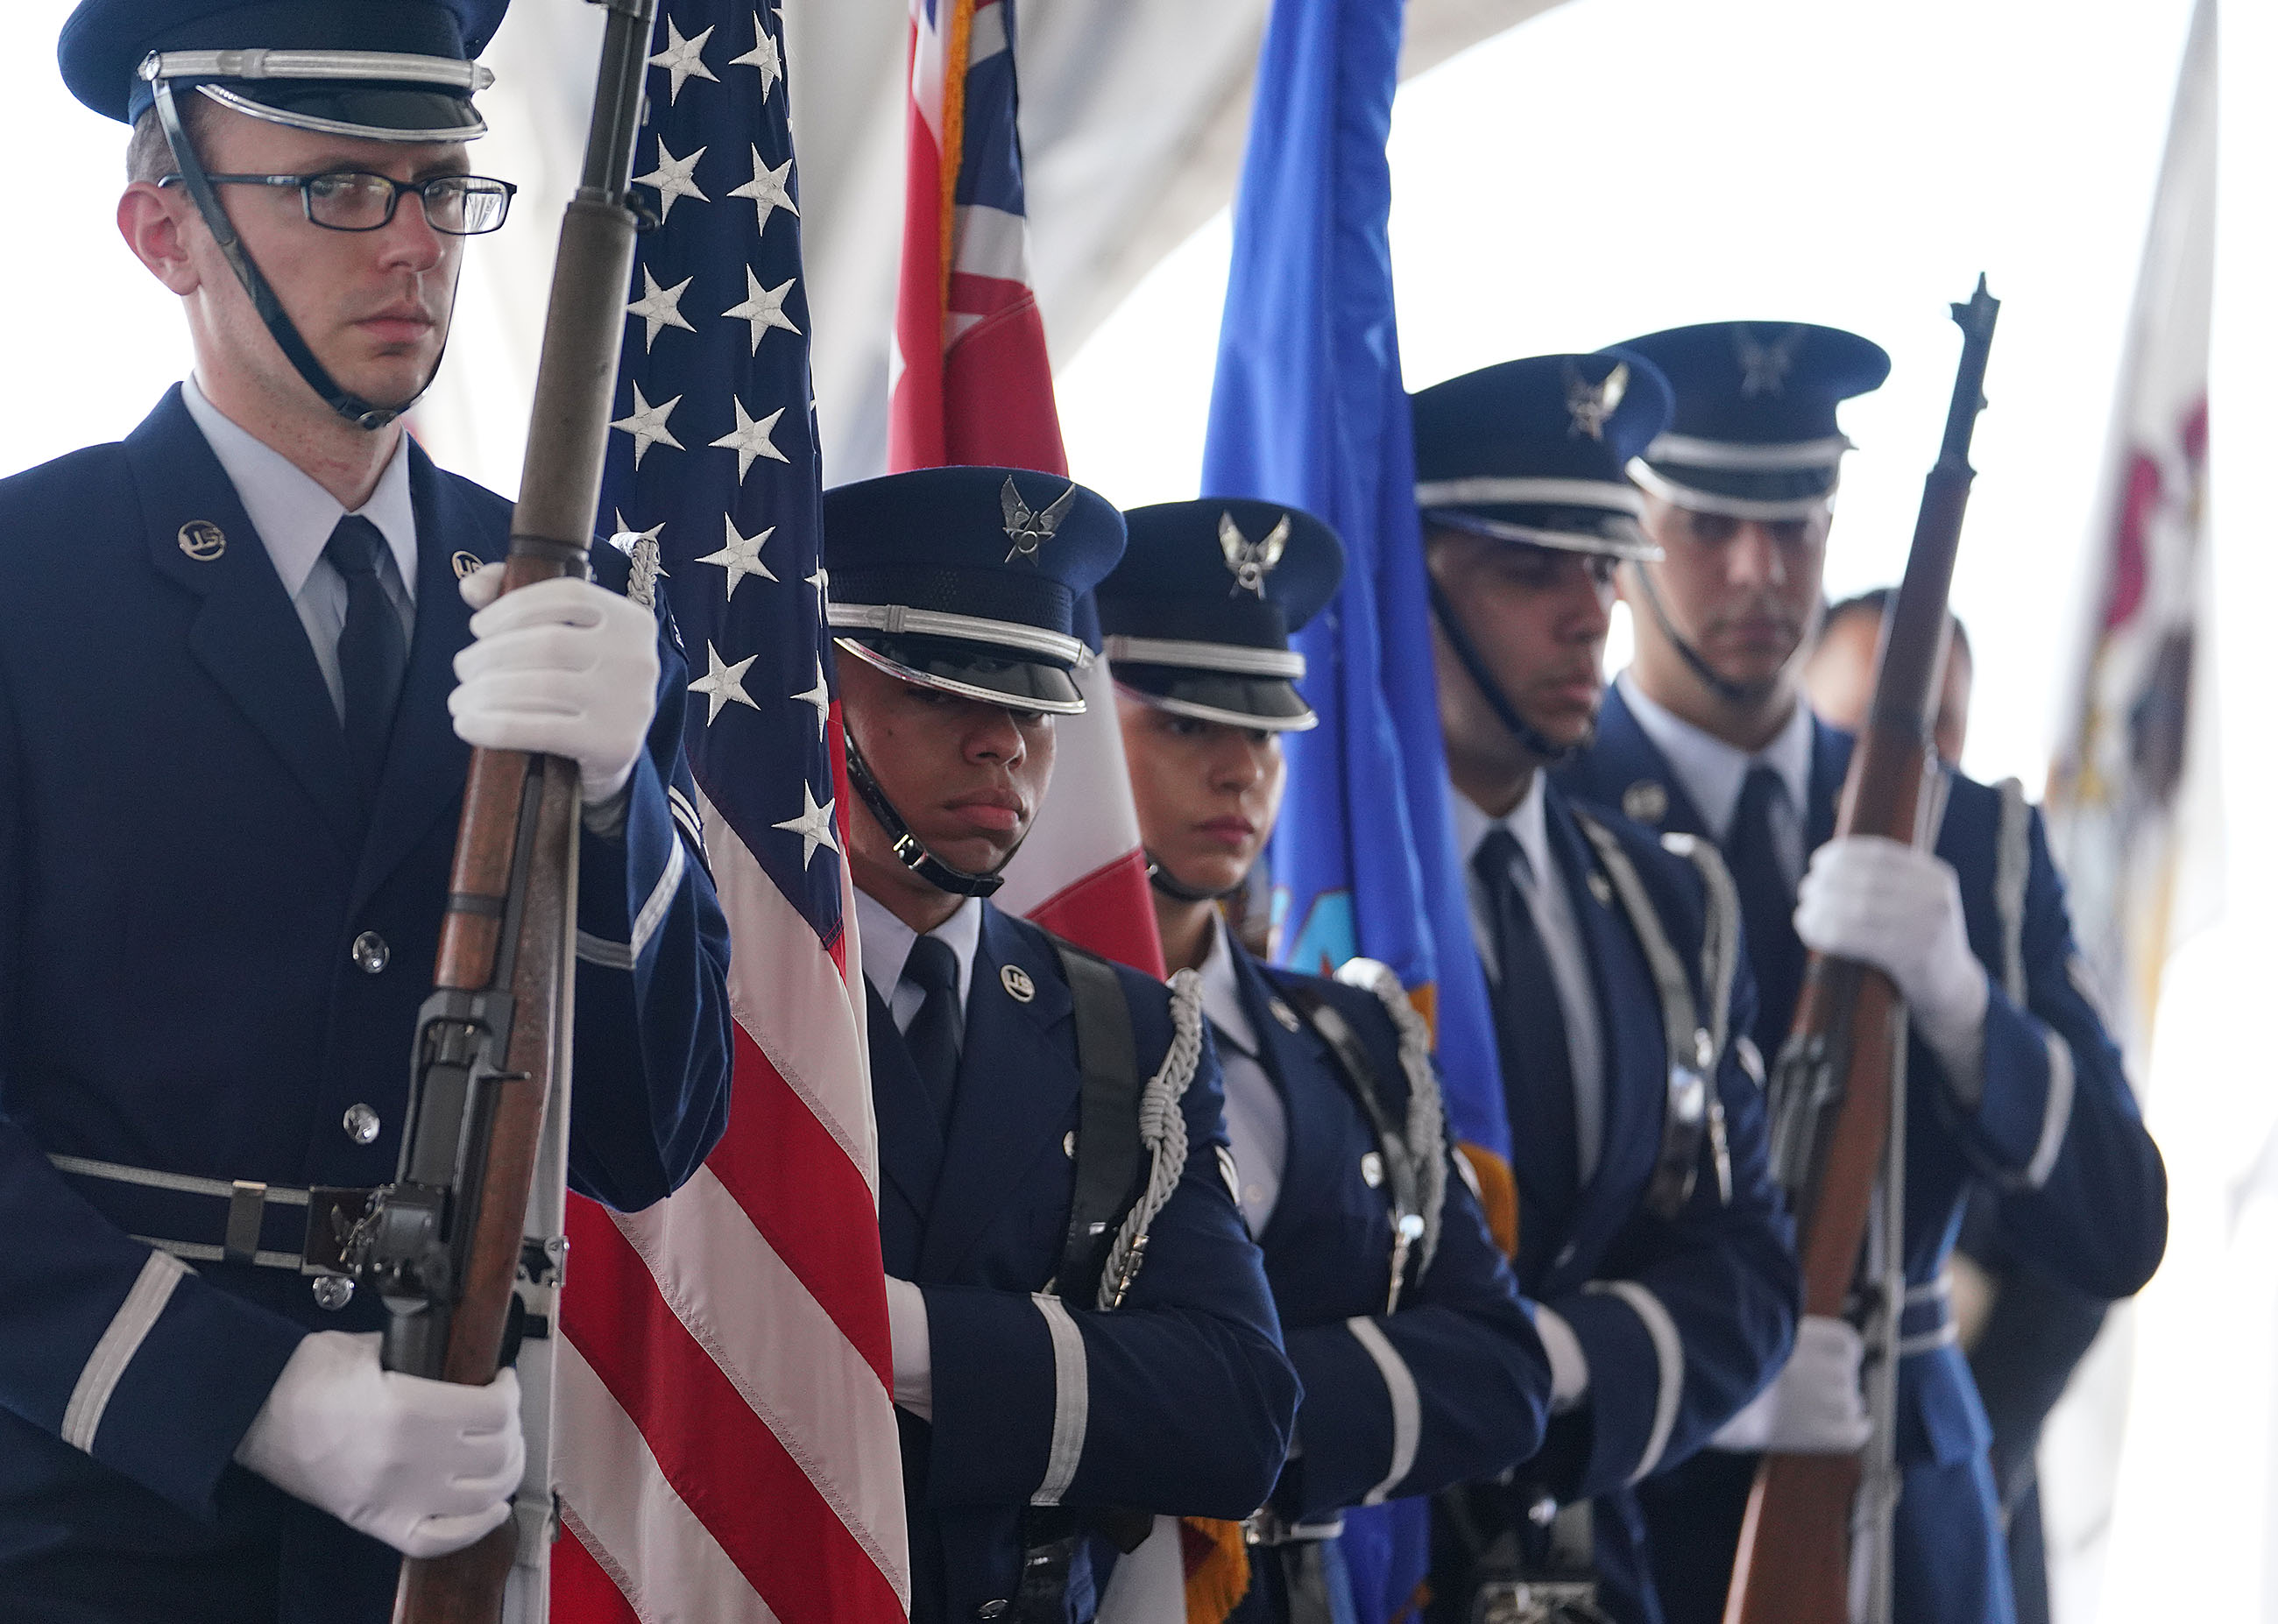 <p>Members of a U.S. Navy honor guard presented the colors during the ceremony.</p>